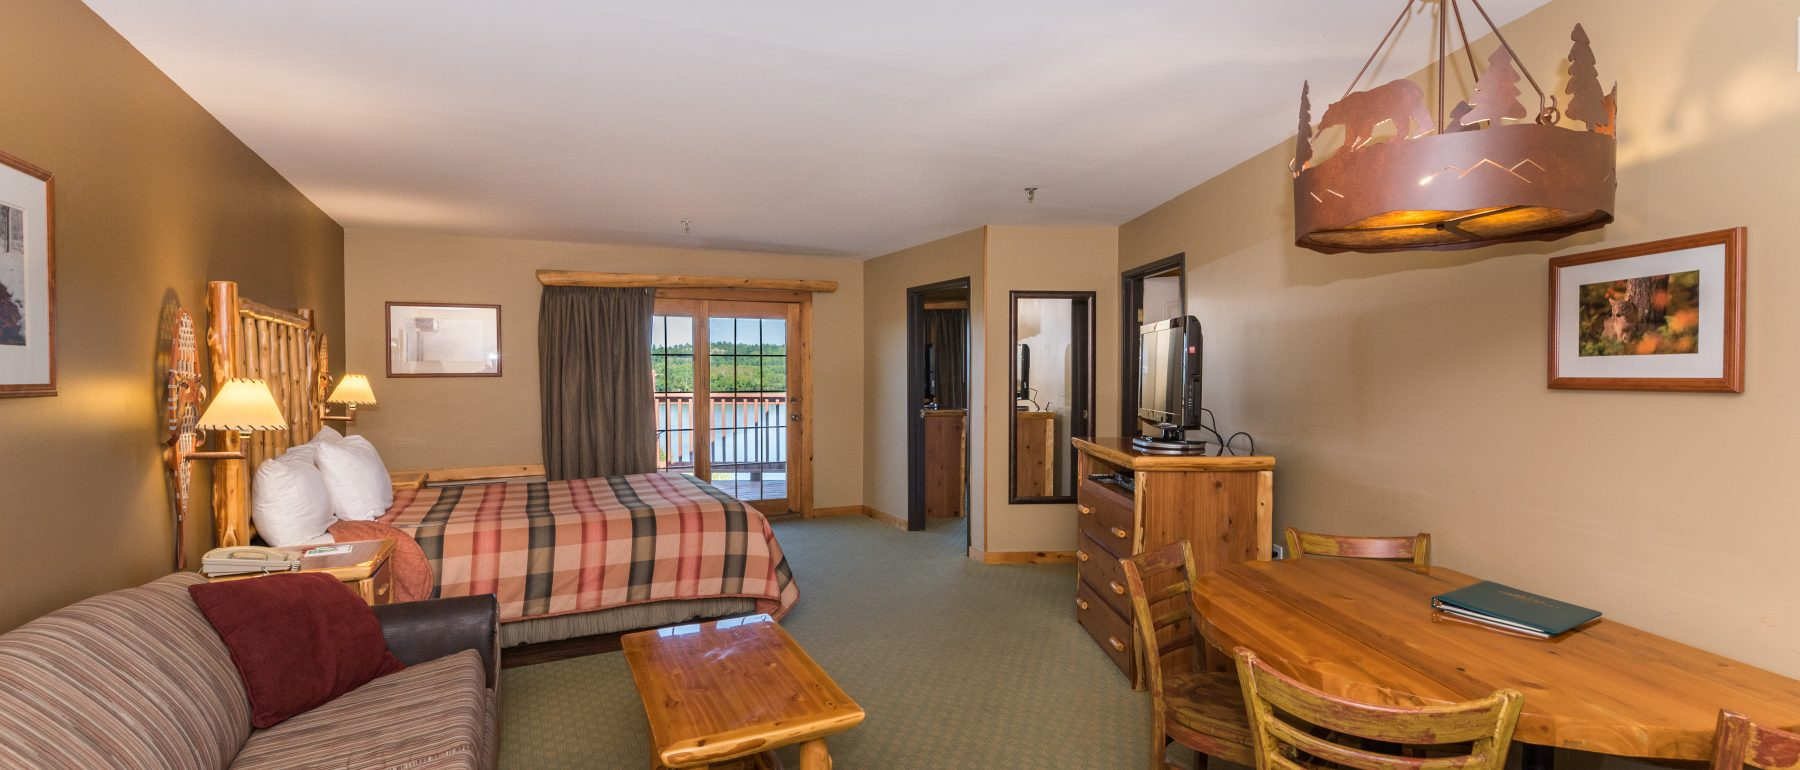 Spacious Two-Room Suite at Grand Ely Lodge